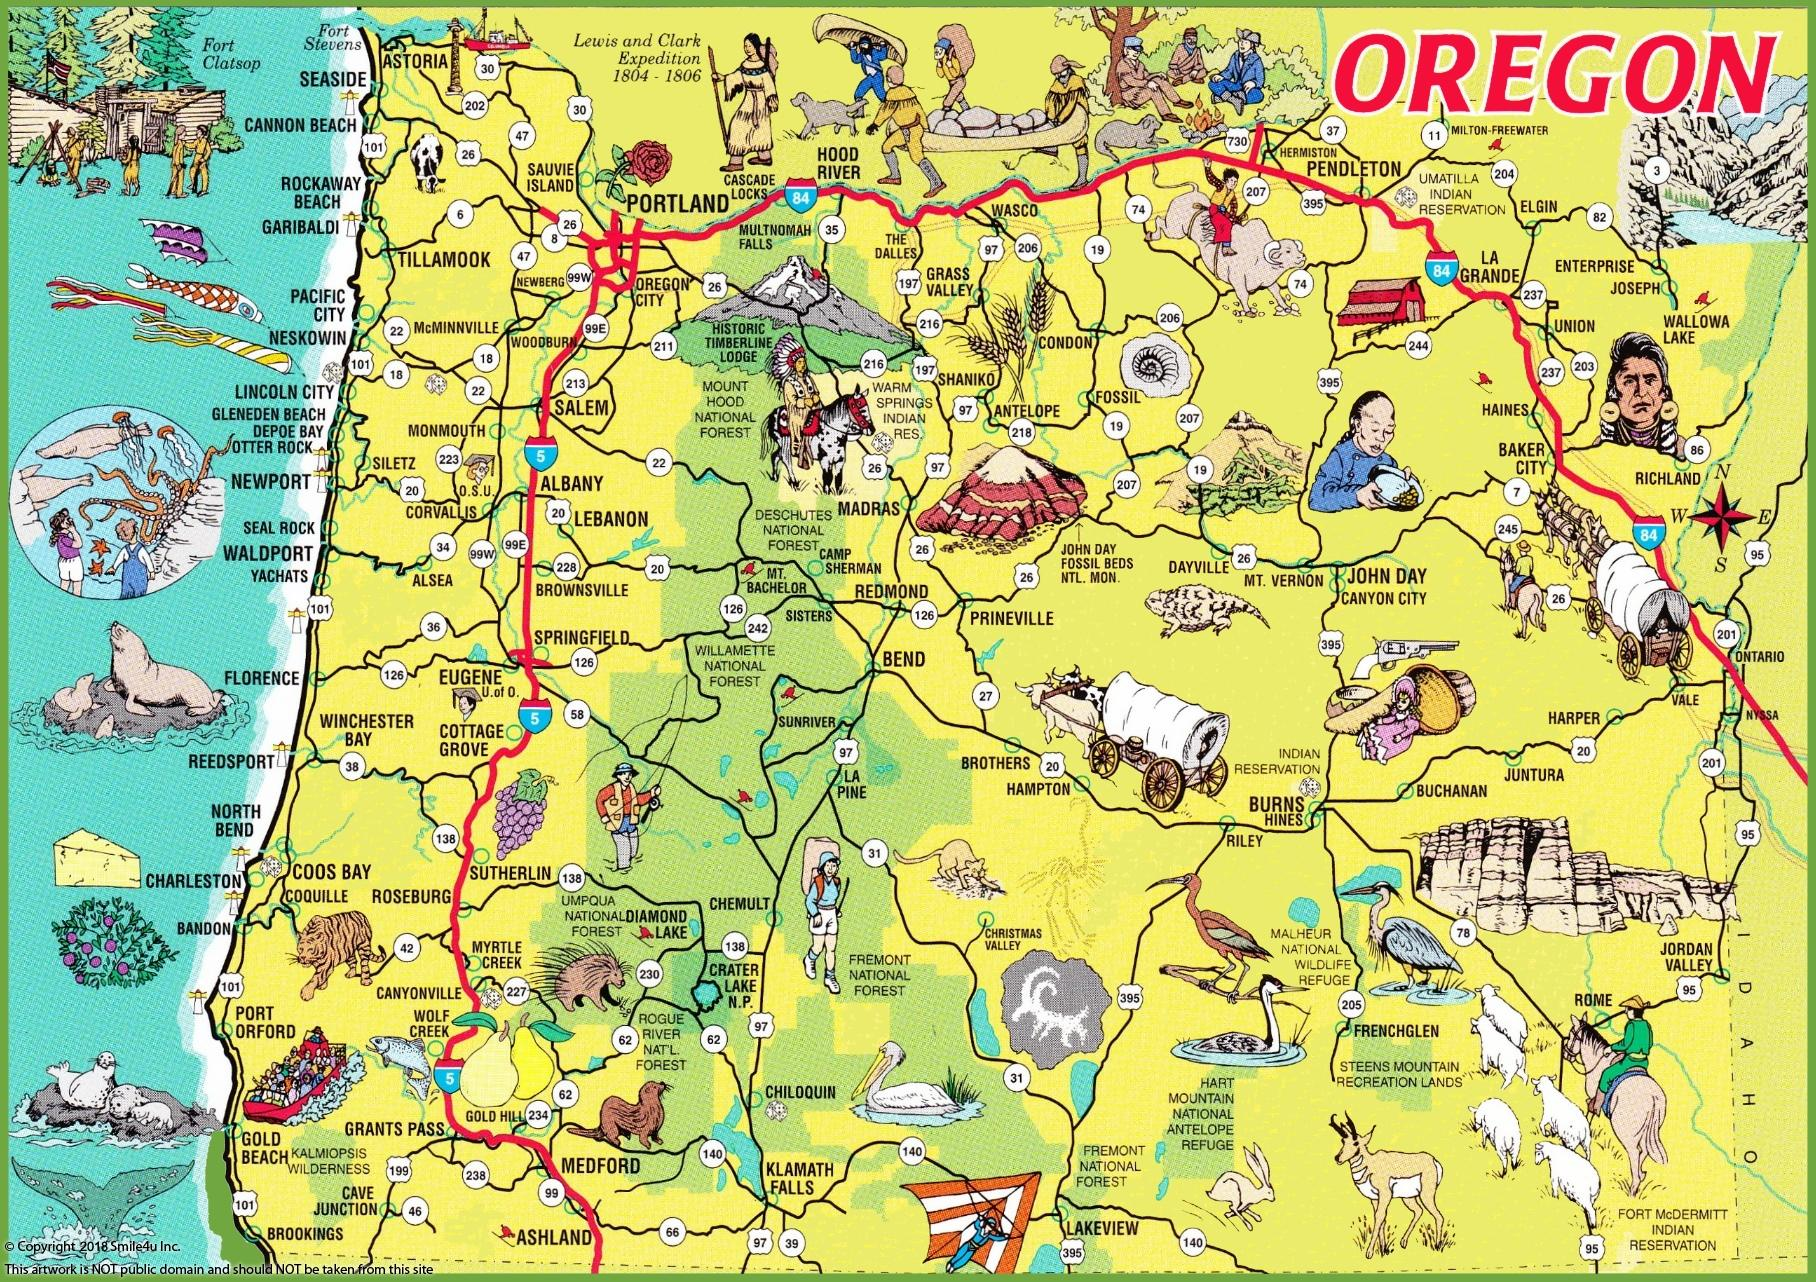 259355_watermarked_pictorial-travel-map-of-oregon.jpg